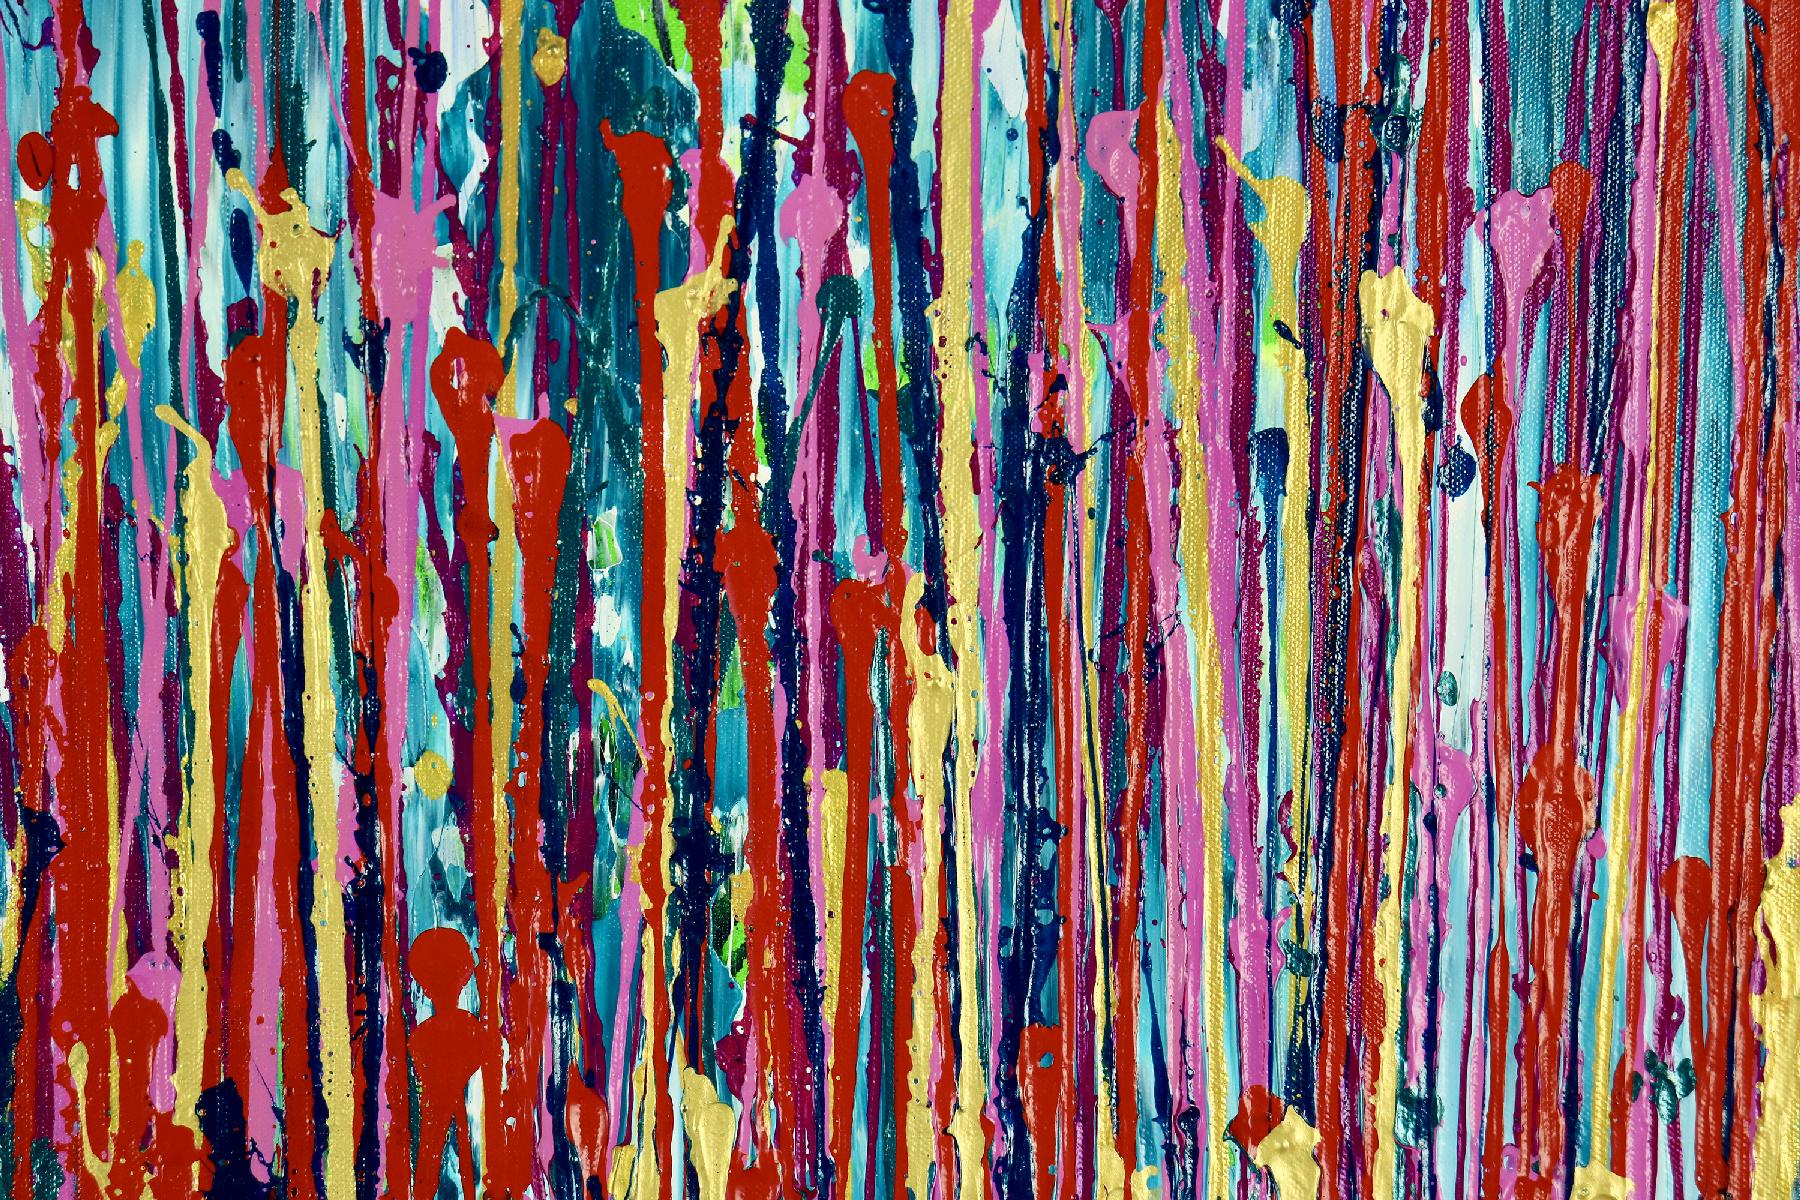 Detail - Awakening Garden 5 (2020) Abstract painting by Nestor Toro